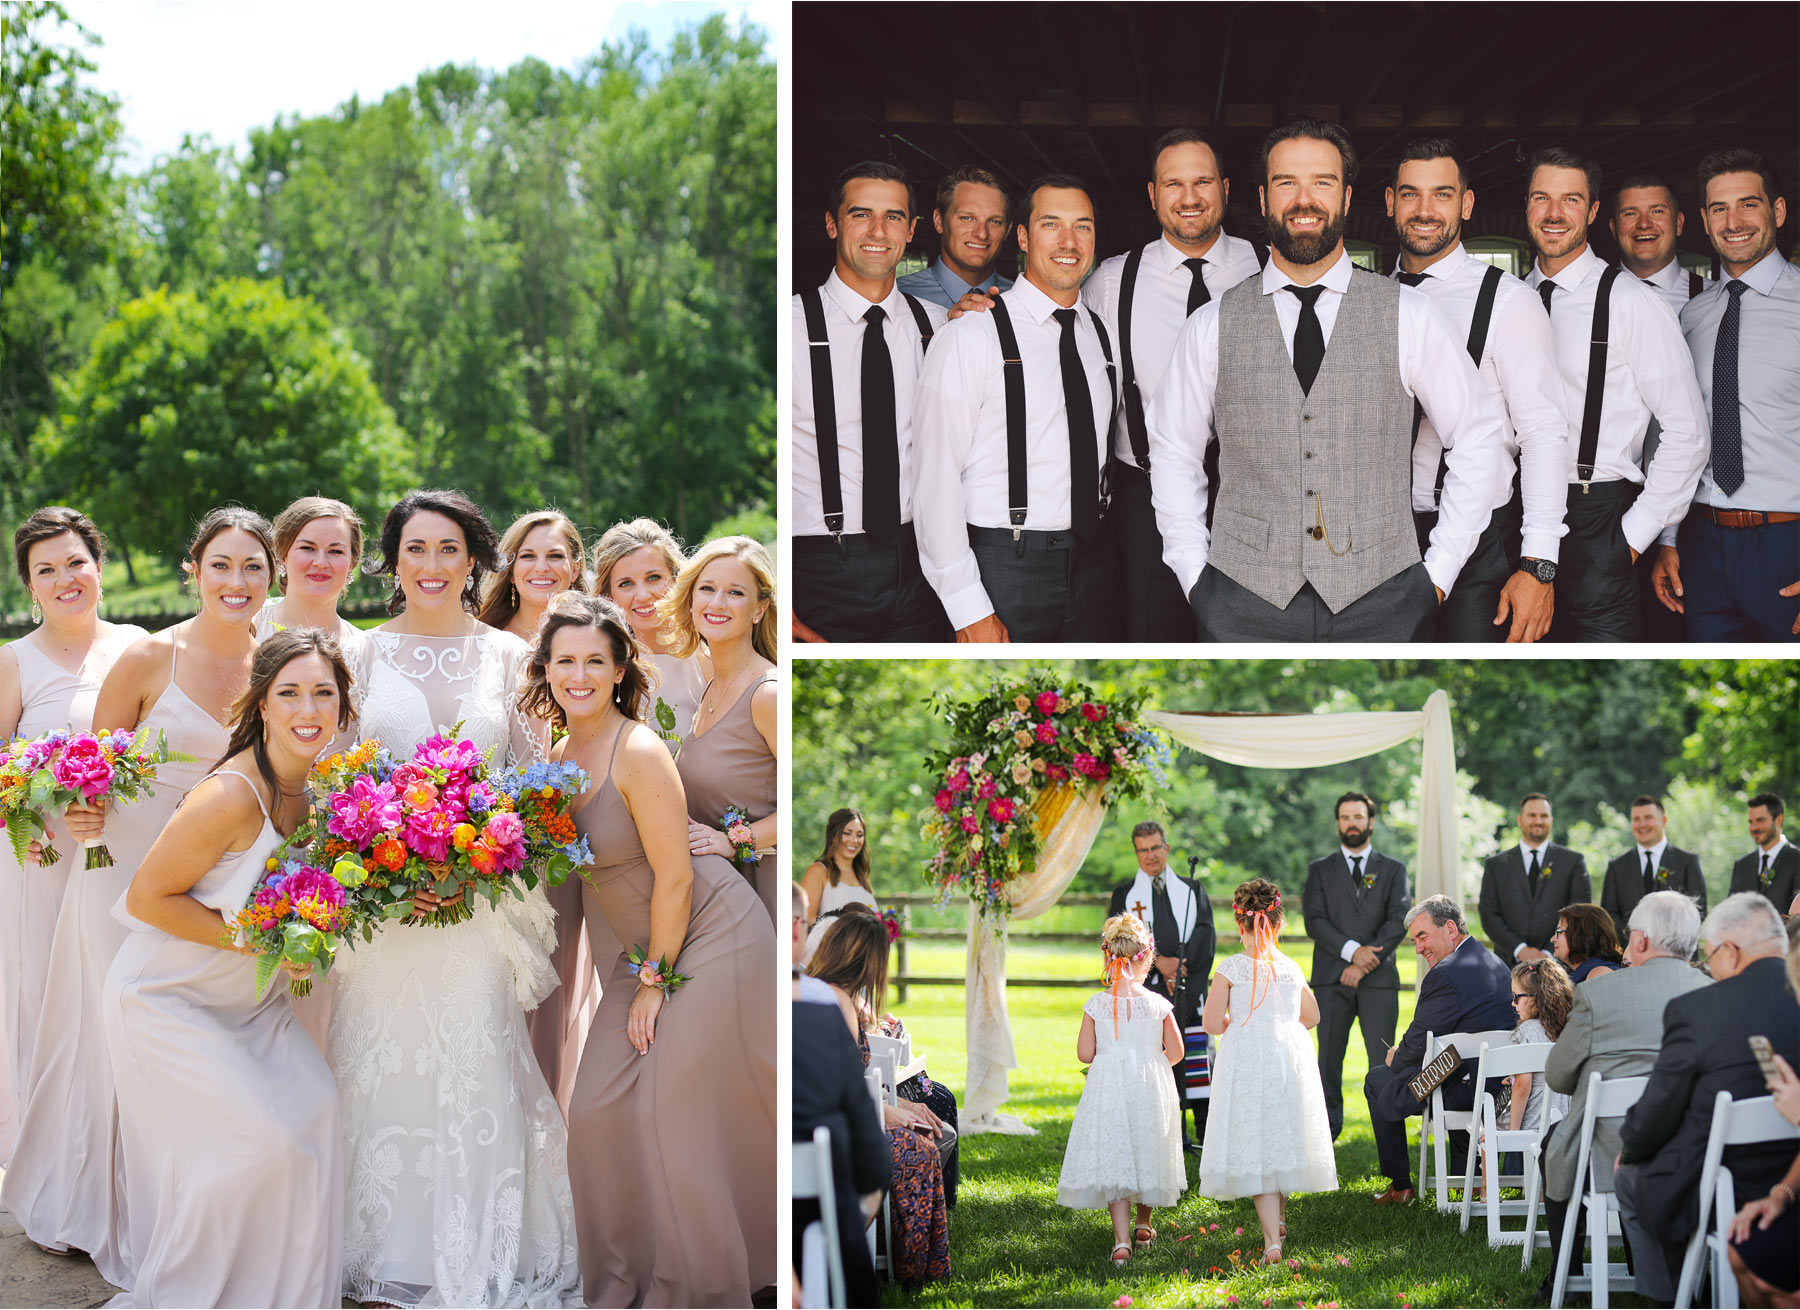 13-Vick-Photography-Rochester-Minnesota-Mayowood-Stone-Barn-Country-Wedding-Summer-Bridesmaids-Groomsmen-Flower-Girls-Lizz-and-Brady.jpg